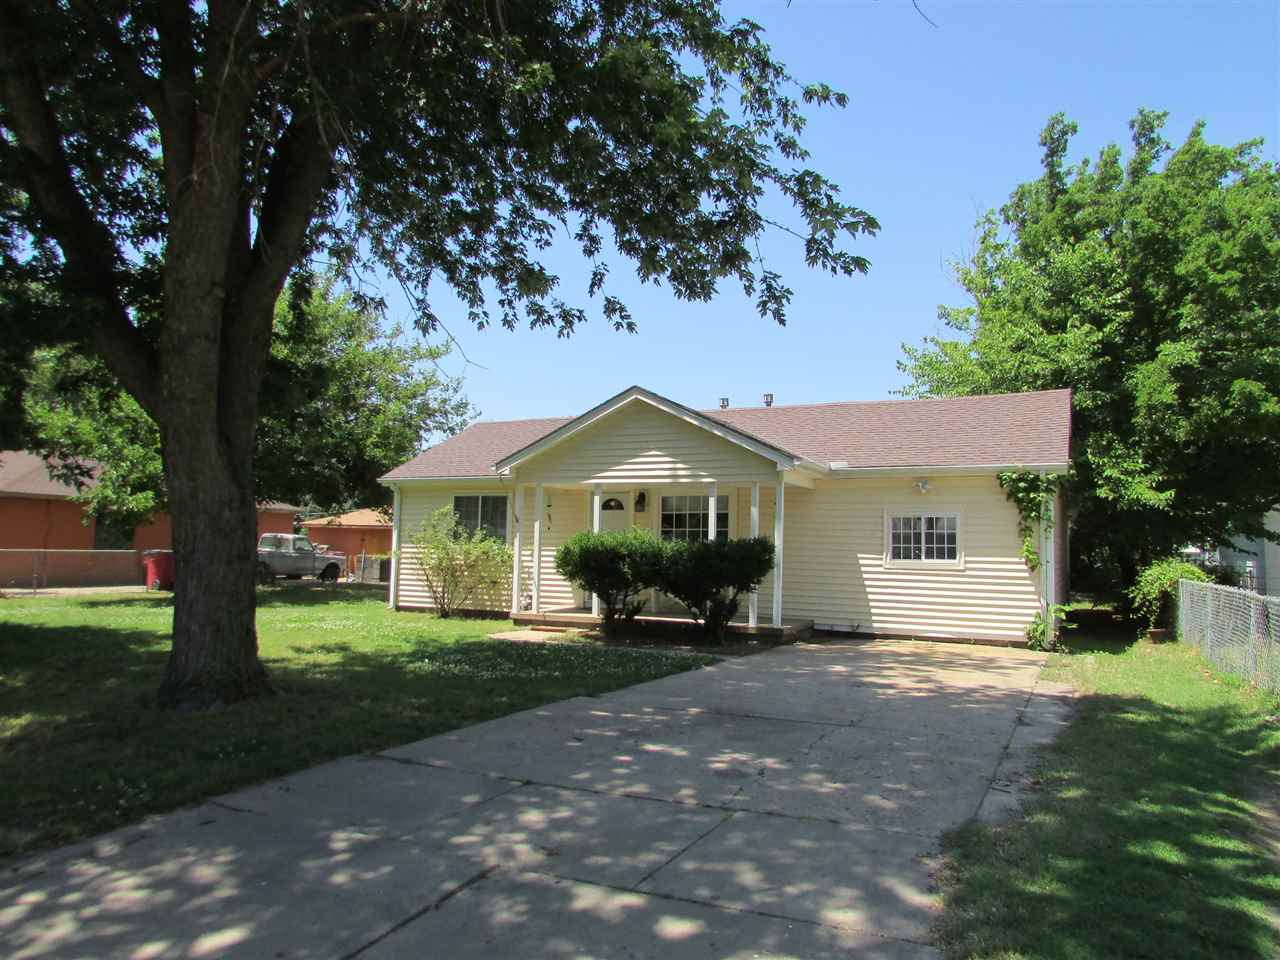 917 Anna, Wichita, KS 67212